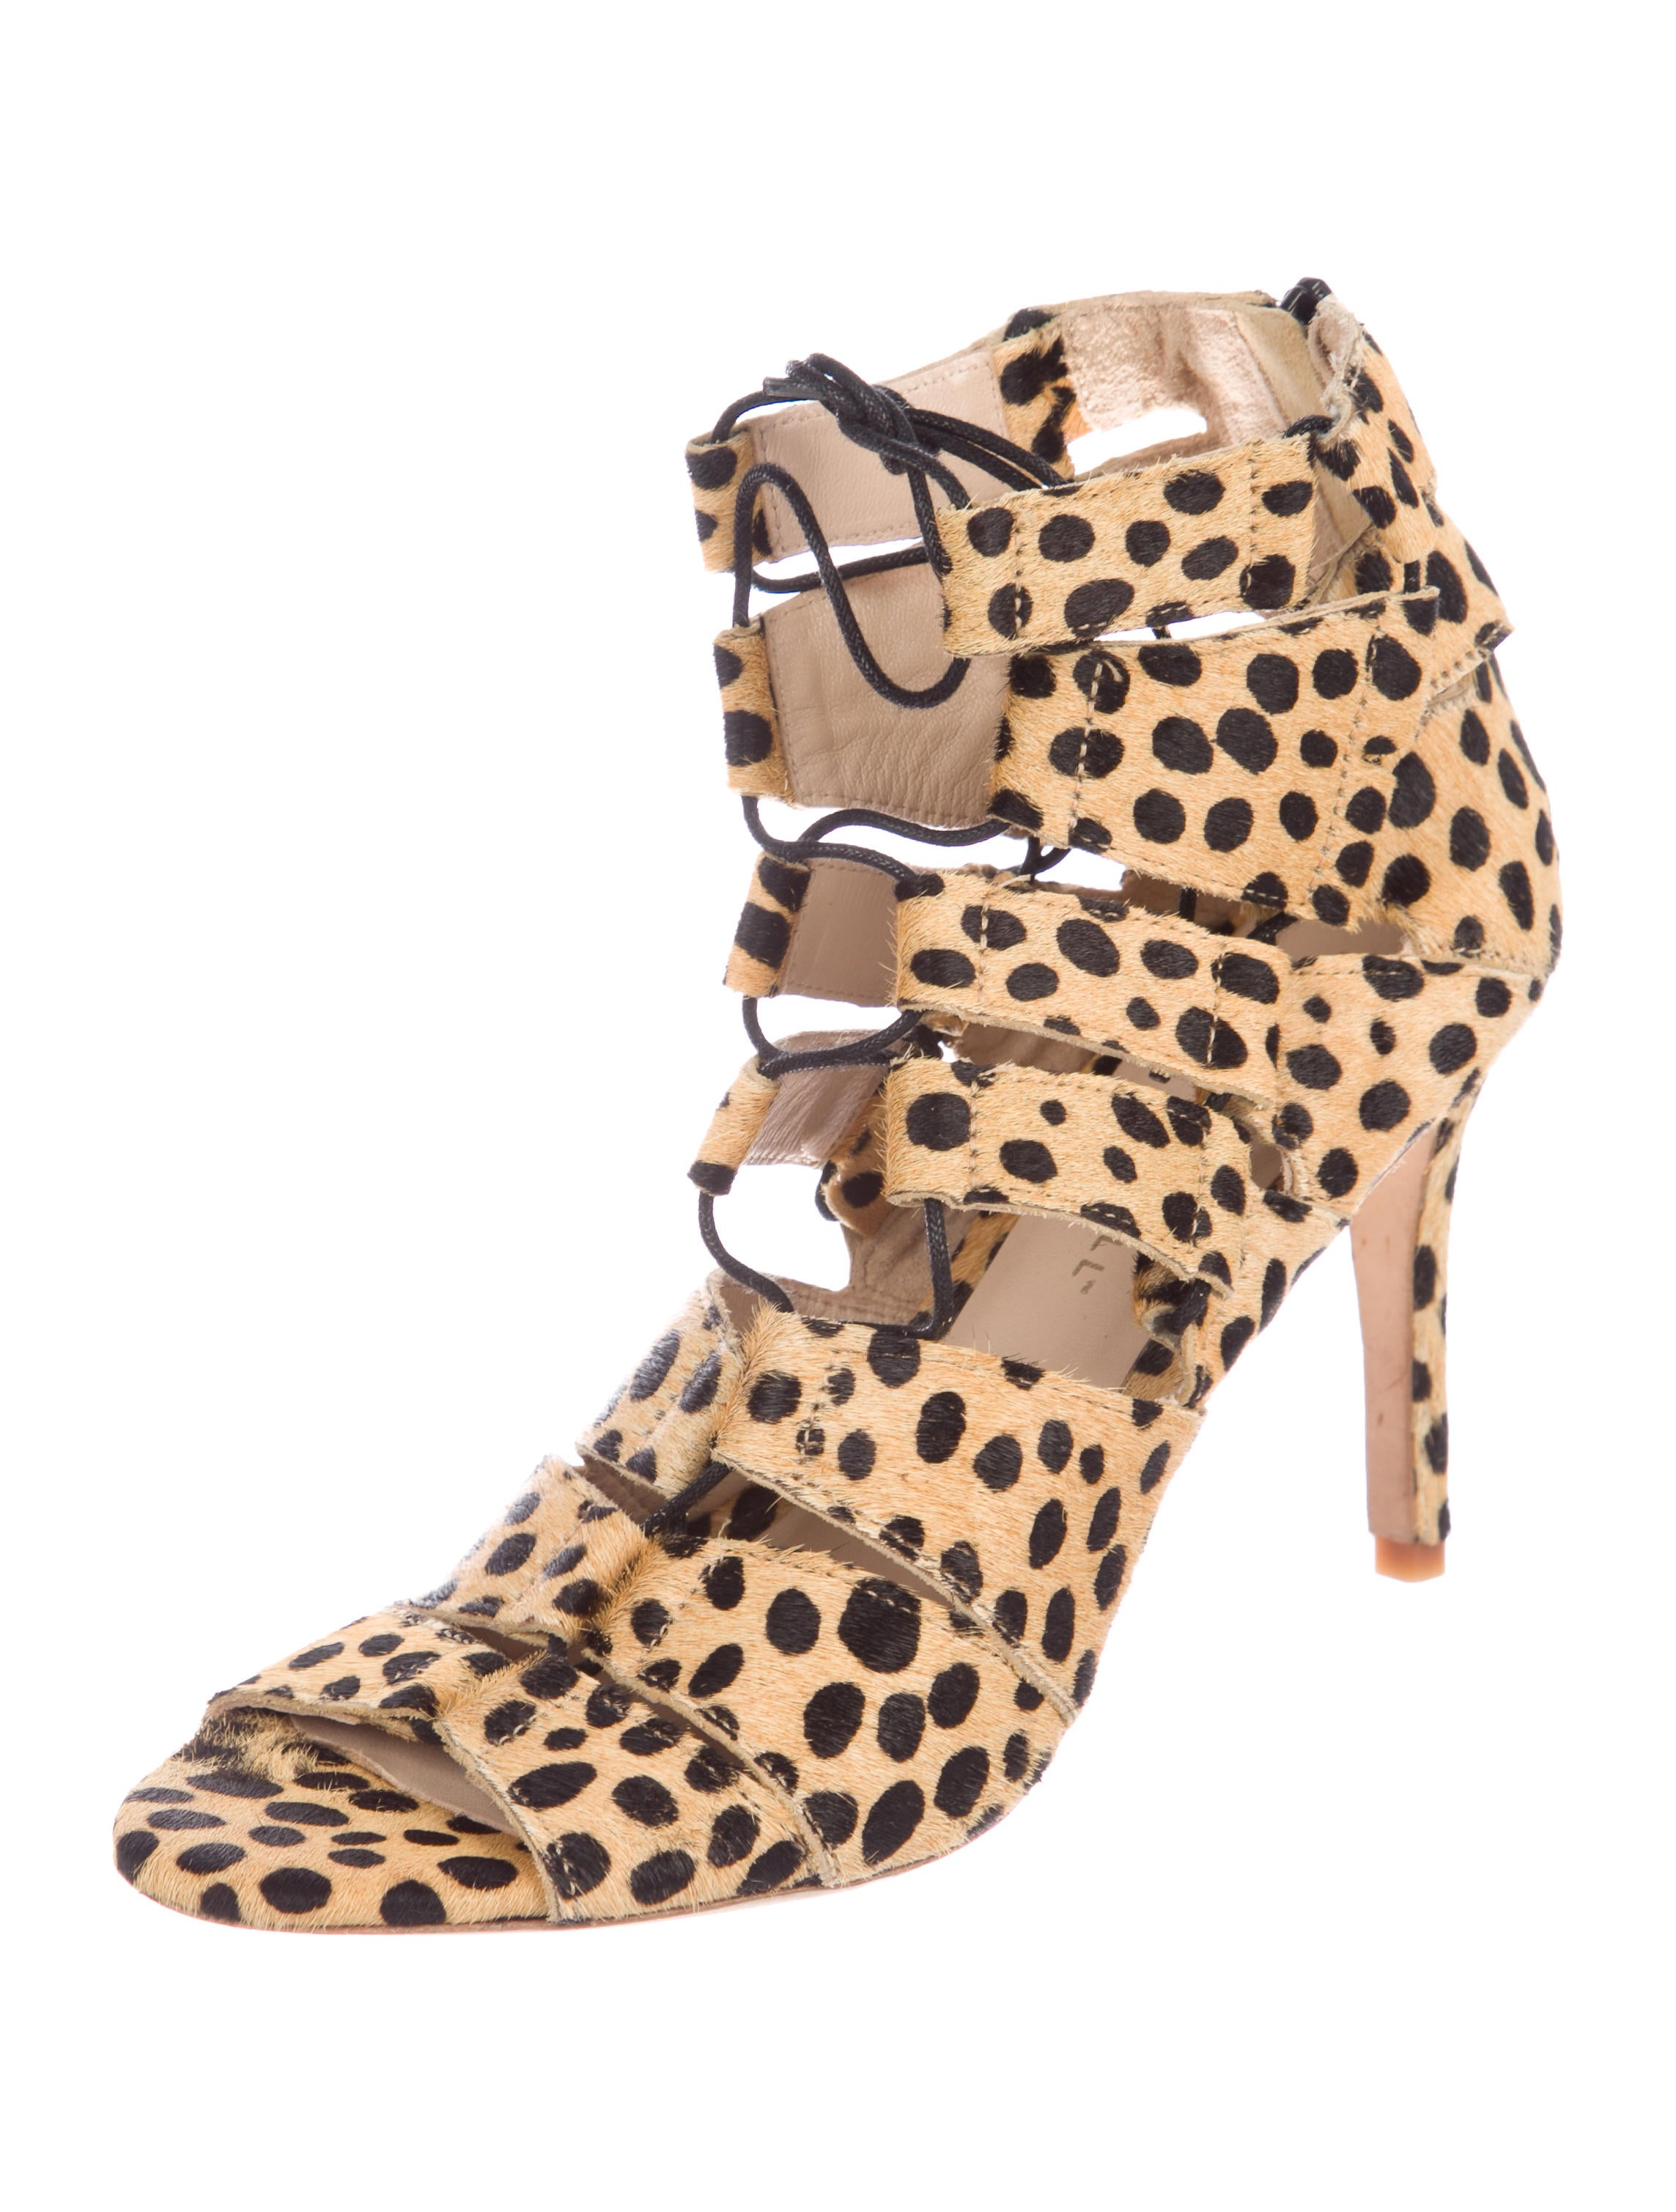 shop sale online buy cheap in China Loeffler Randall Lottie Ponyhair Cage Sandals geniue stockist buy cheap low price fee shipping outlet shop for d1IFX9DR